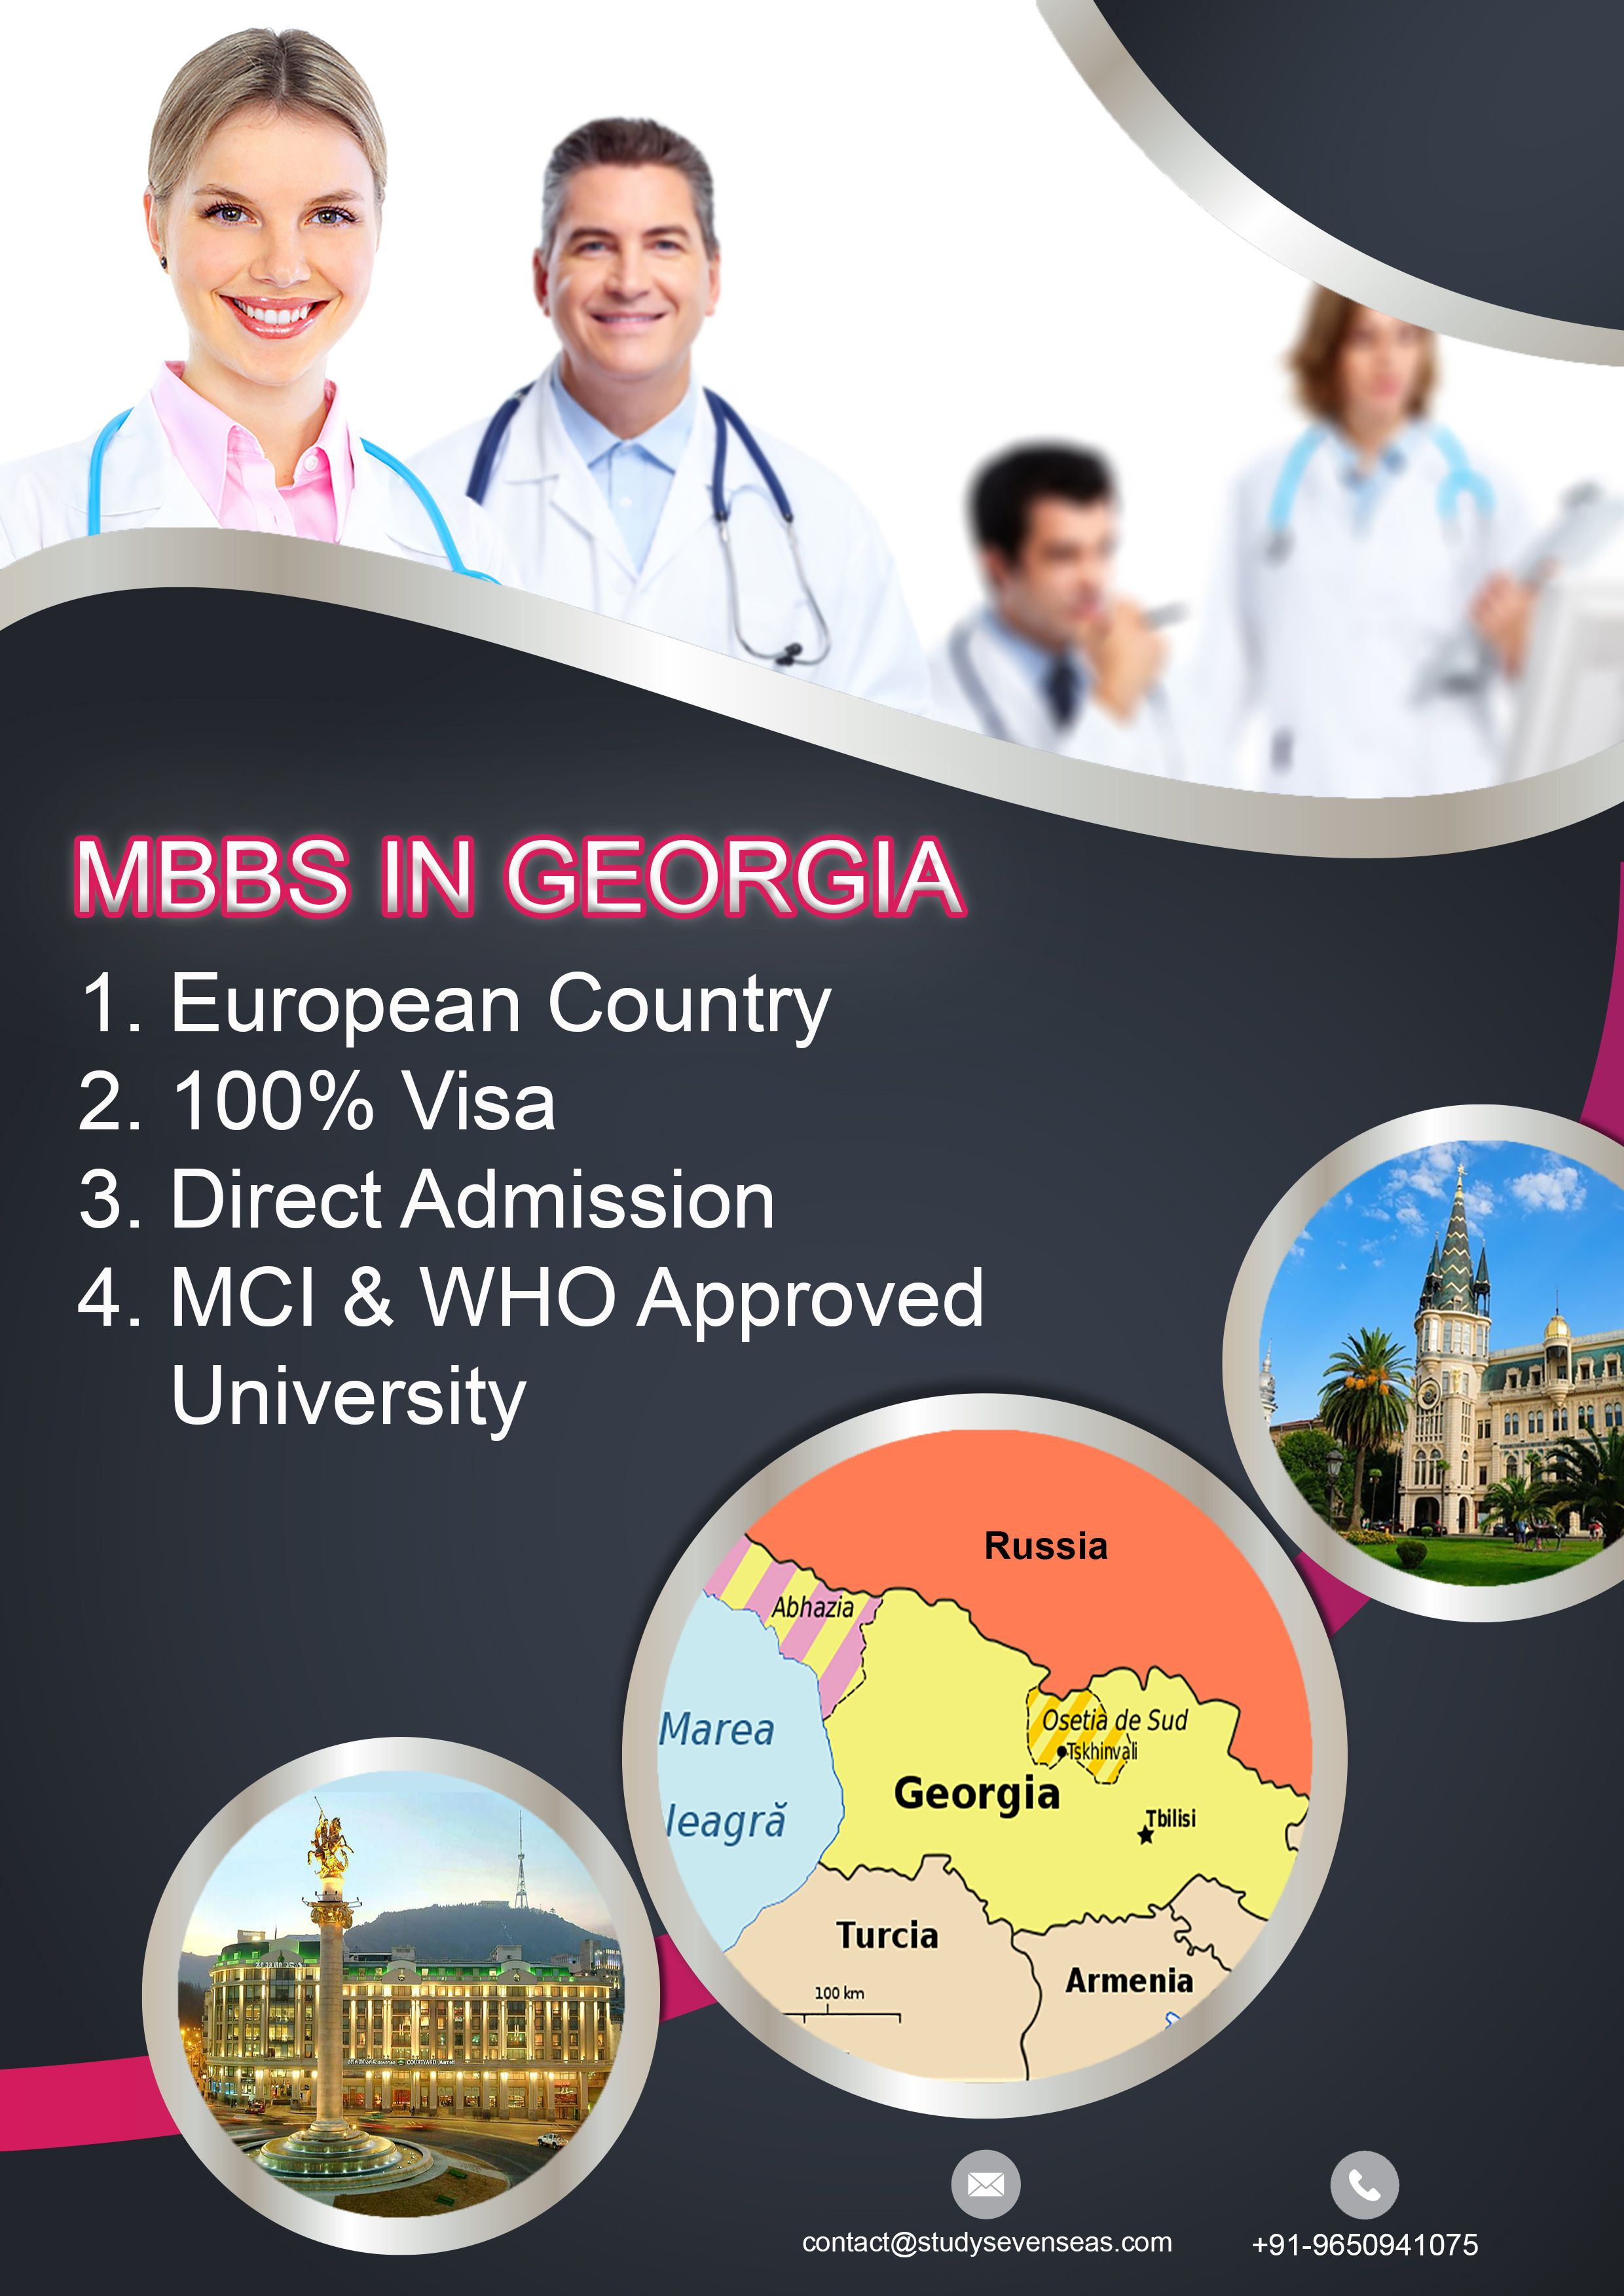 Pin by study sevenseas on mbbs in abroad human resources